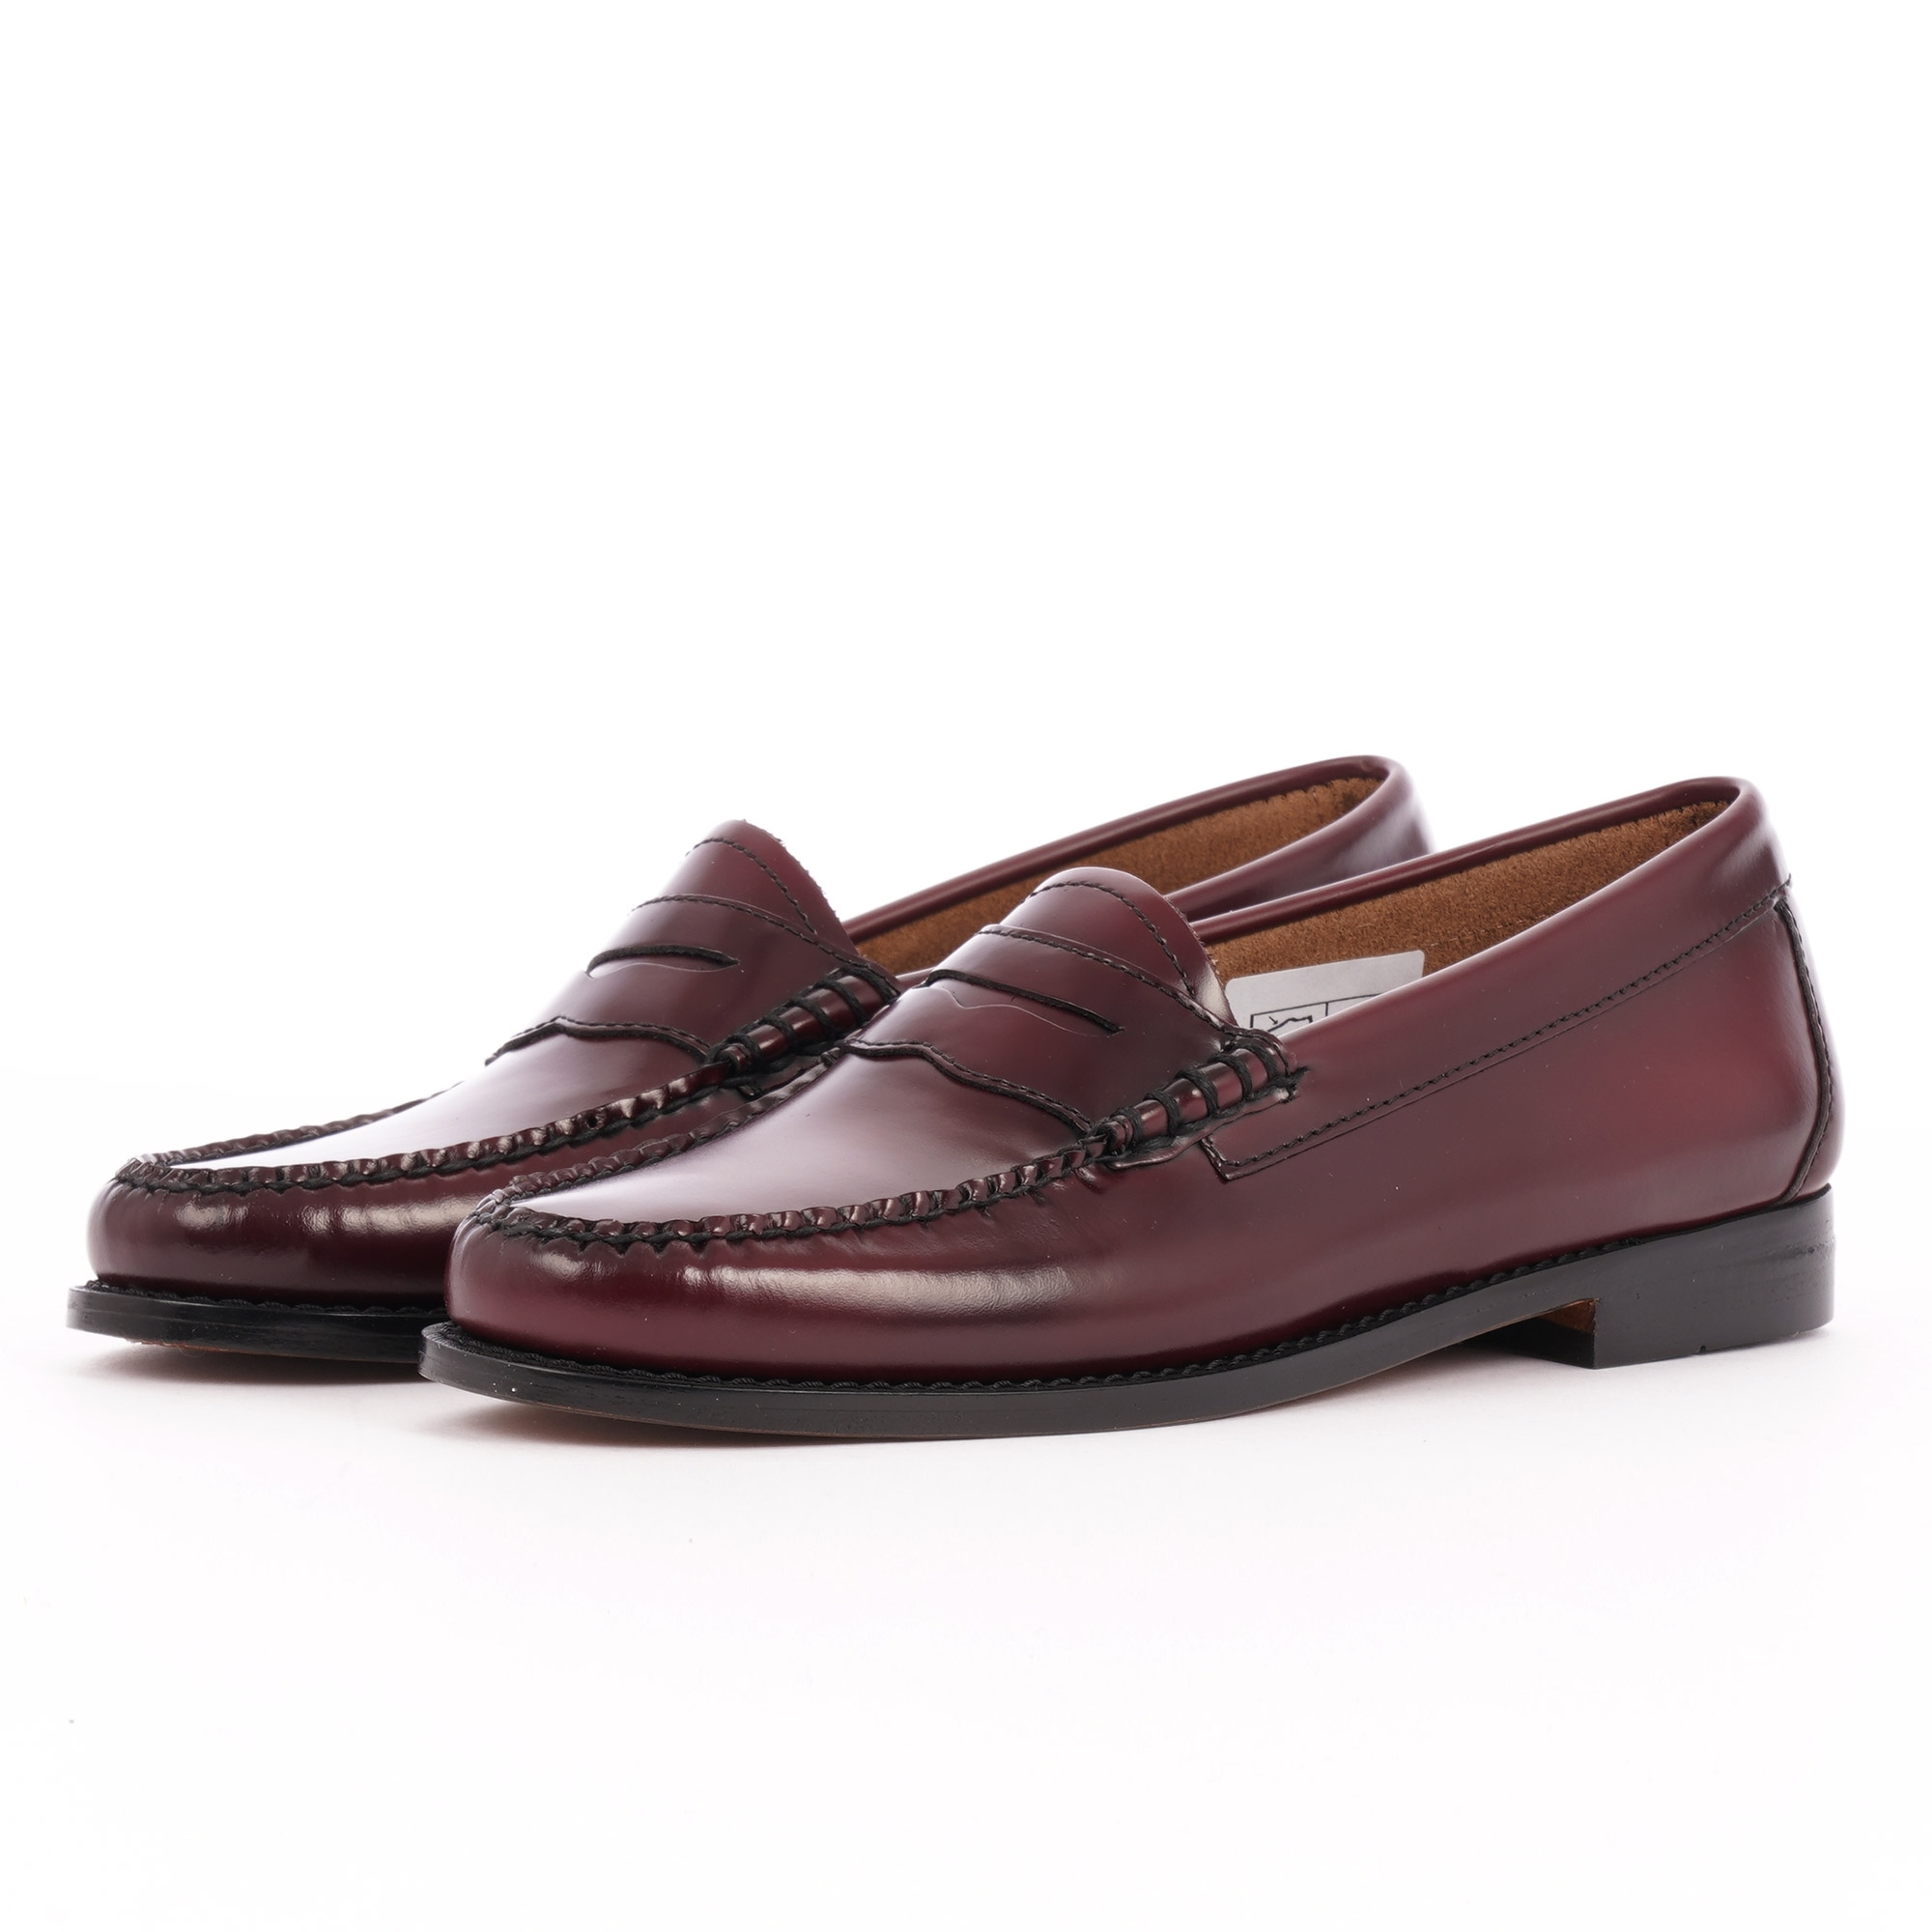 Bass Weejuns Womens Penny Loafer   Wine Leather   BA41010ONN